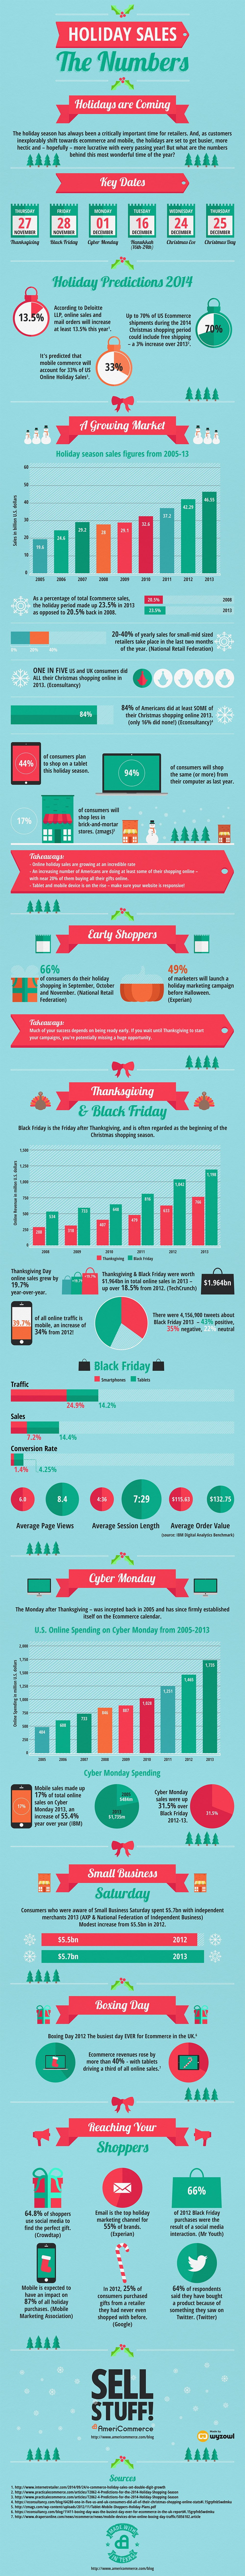 Holiday Sales - Infographic